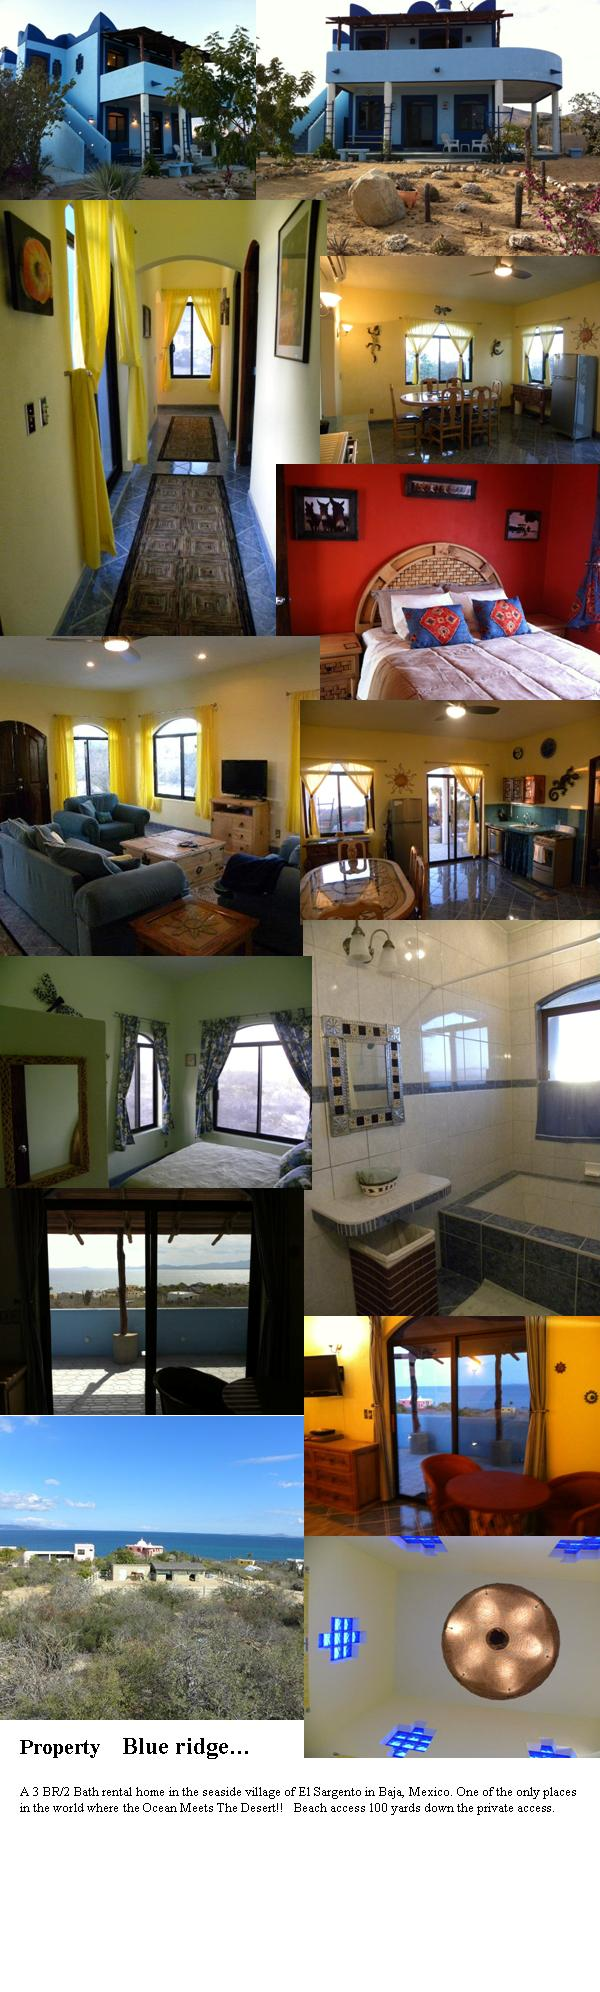 house home rentals B&B, rooms, trailers Tito10